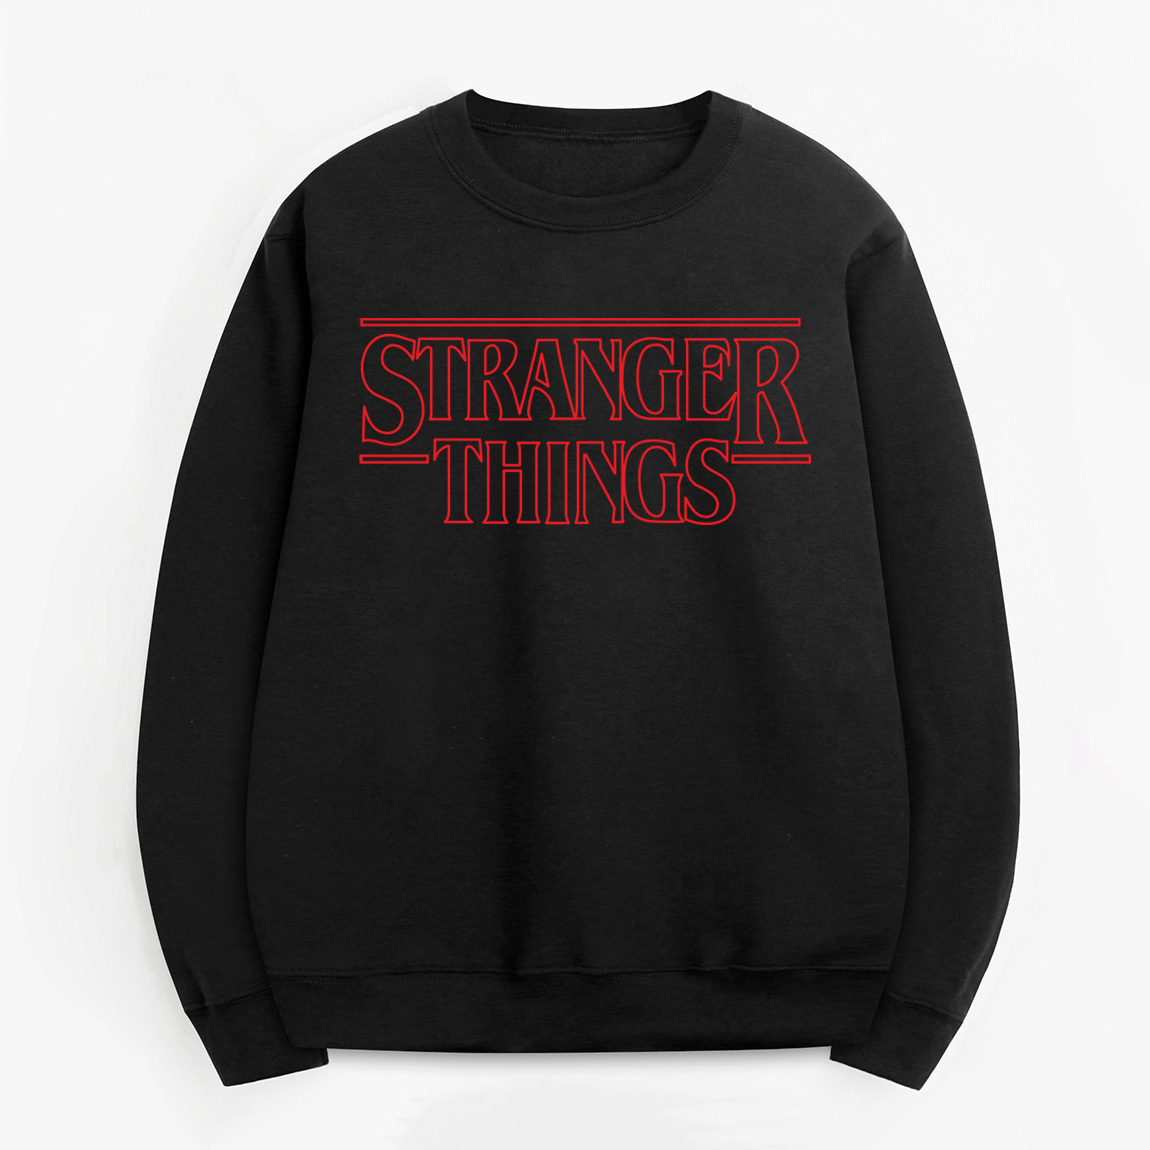 O-neck Hip-hop Tracksuits For Autumn Winter Man Pullovers 2019 Stranger Things Hoodies Men Long Sleeve Casual Fleece Sweatshirts